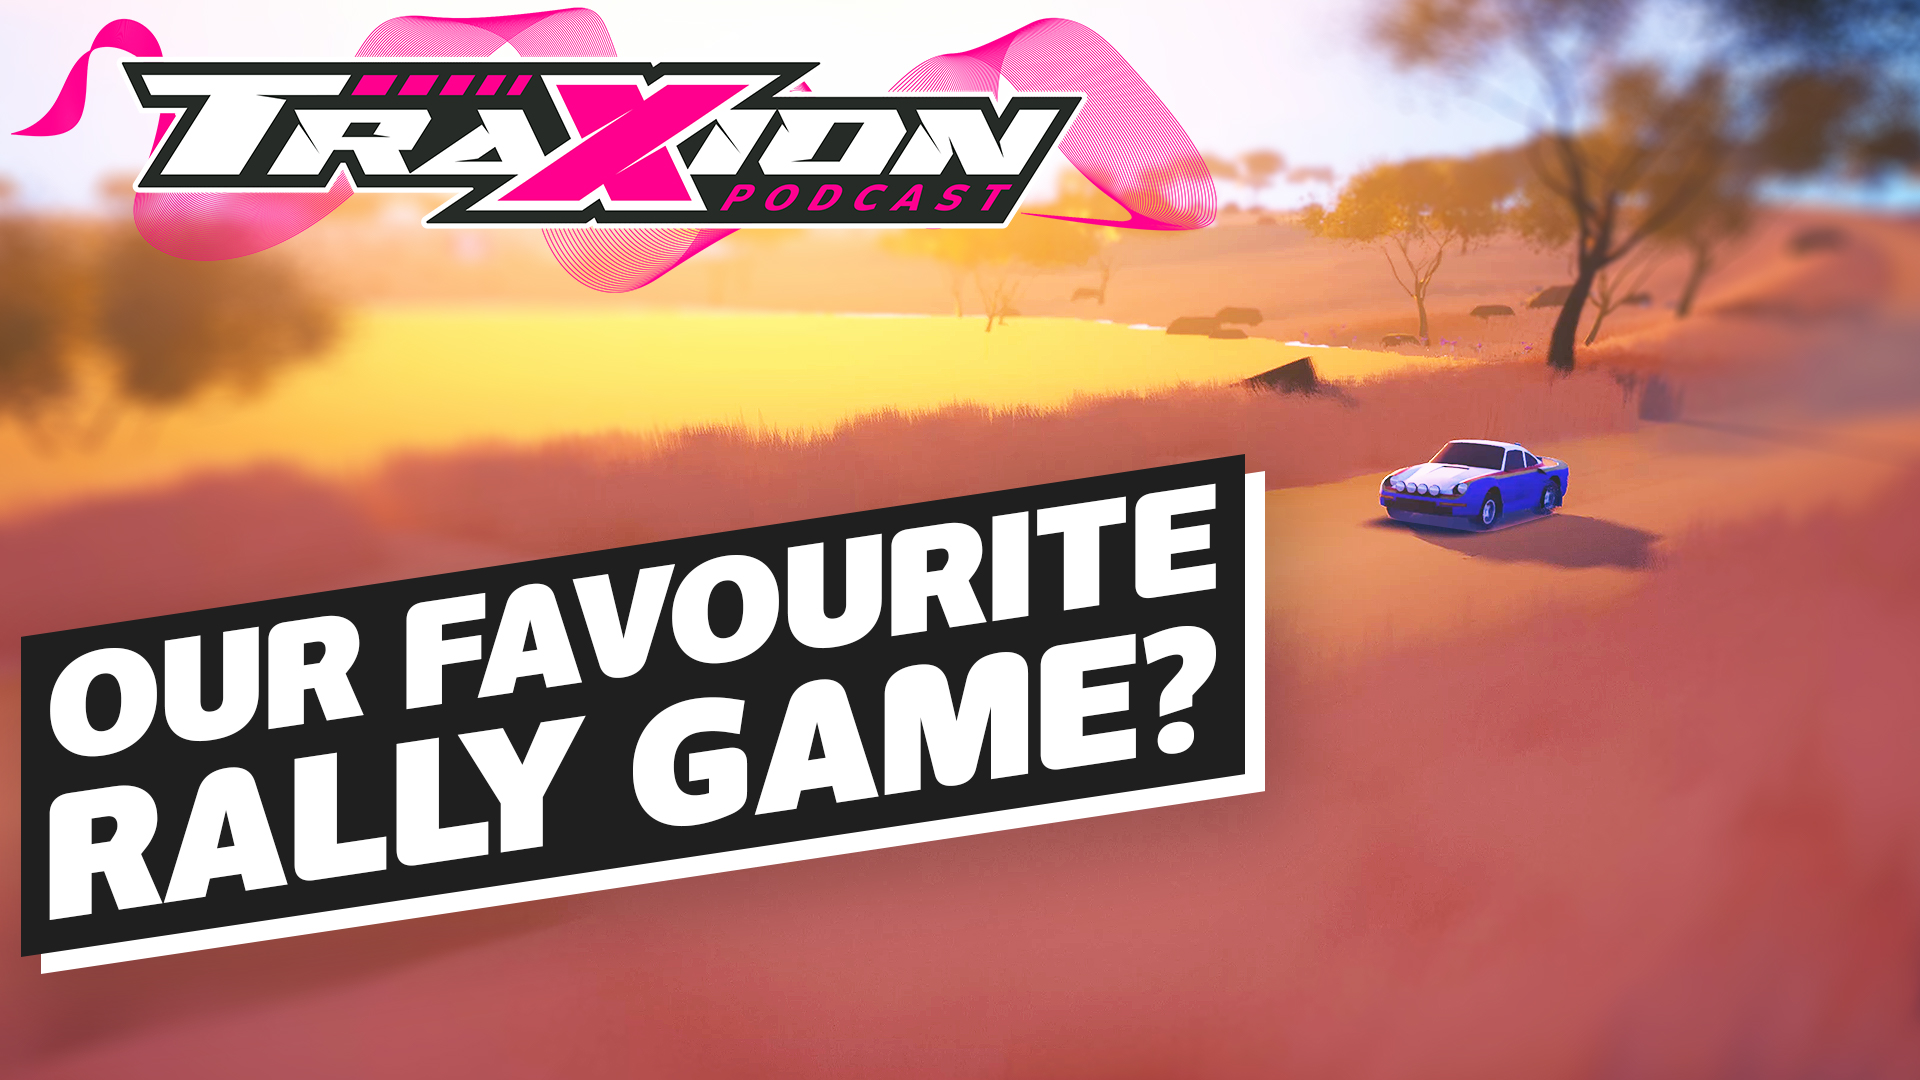 How 'art of rally' captured our imagination| The Traxion.GG Podcast, Season 2, Episode 12